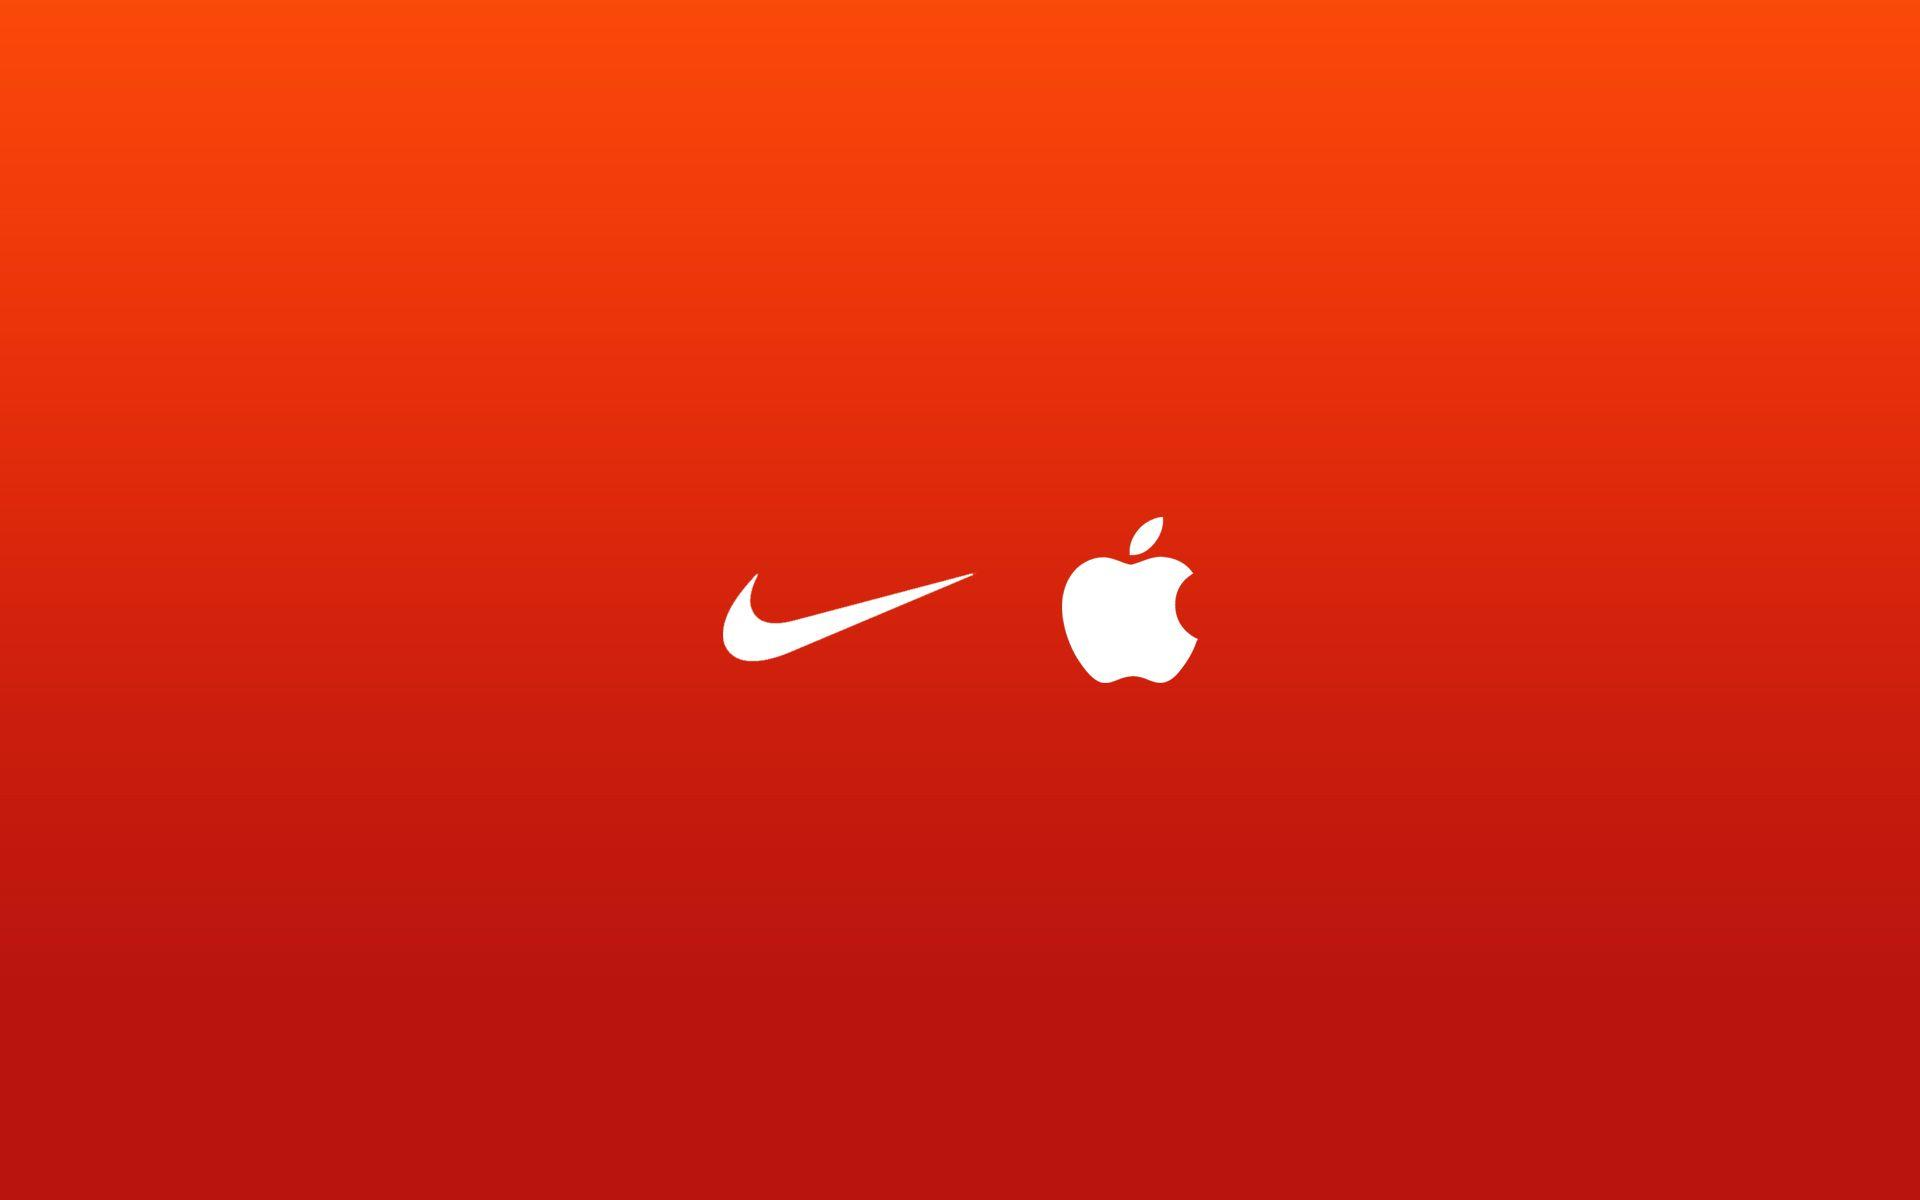 Wallpapers For > Red Nike Wallpapers For Iphone 5